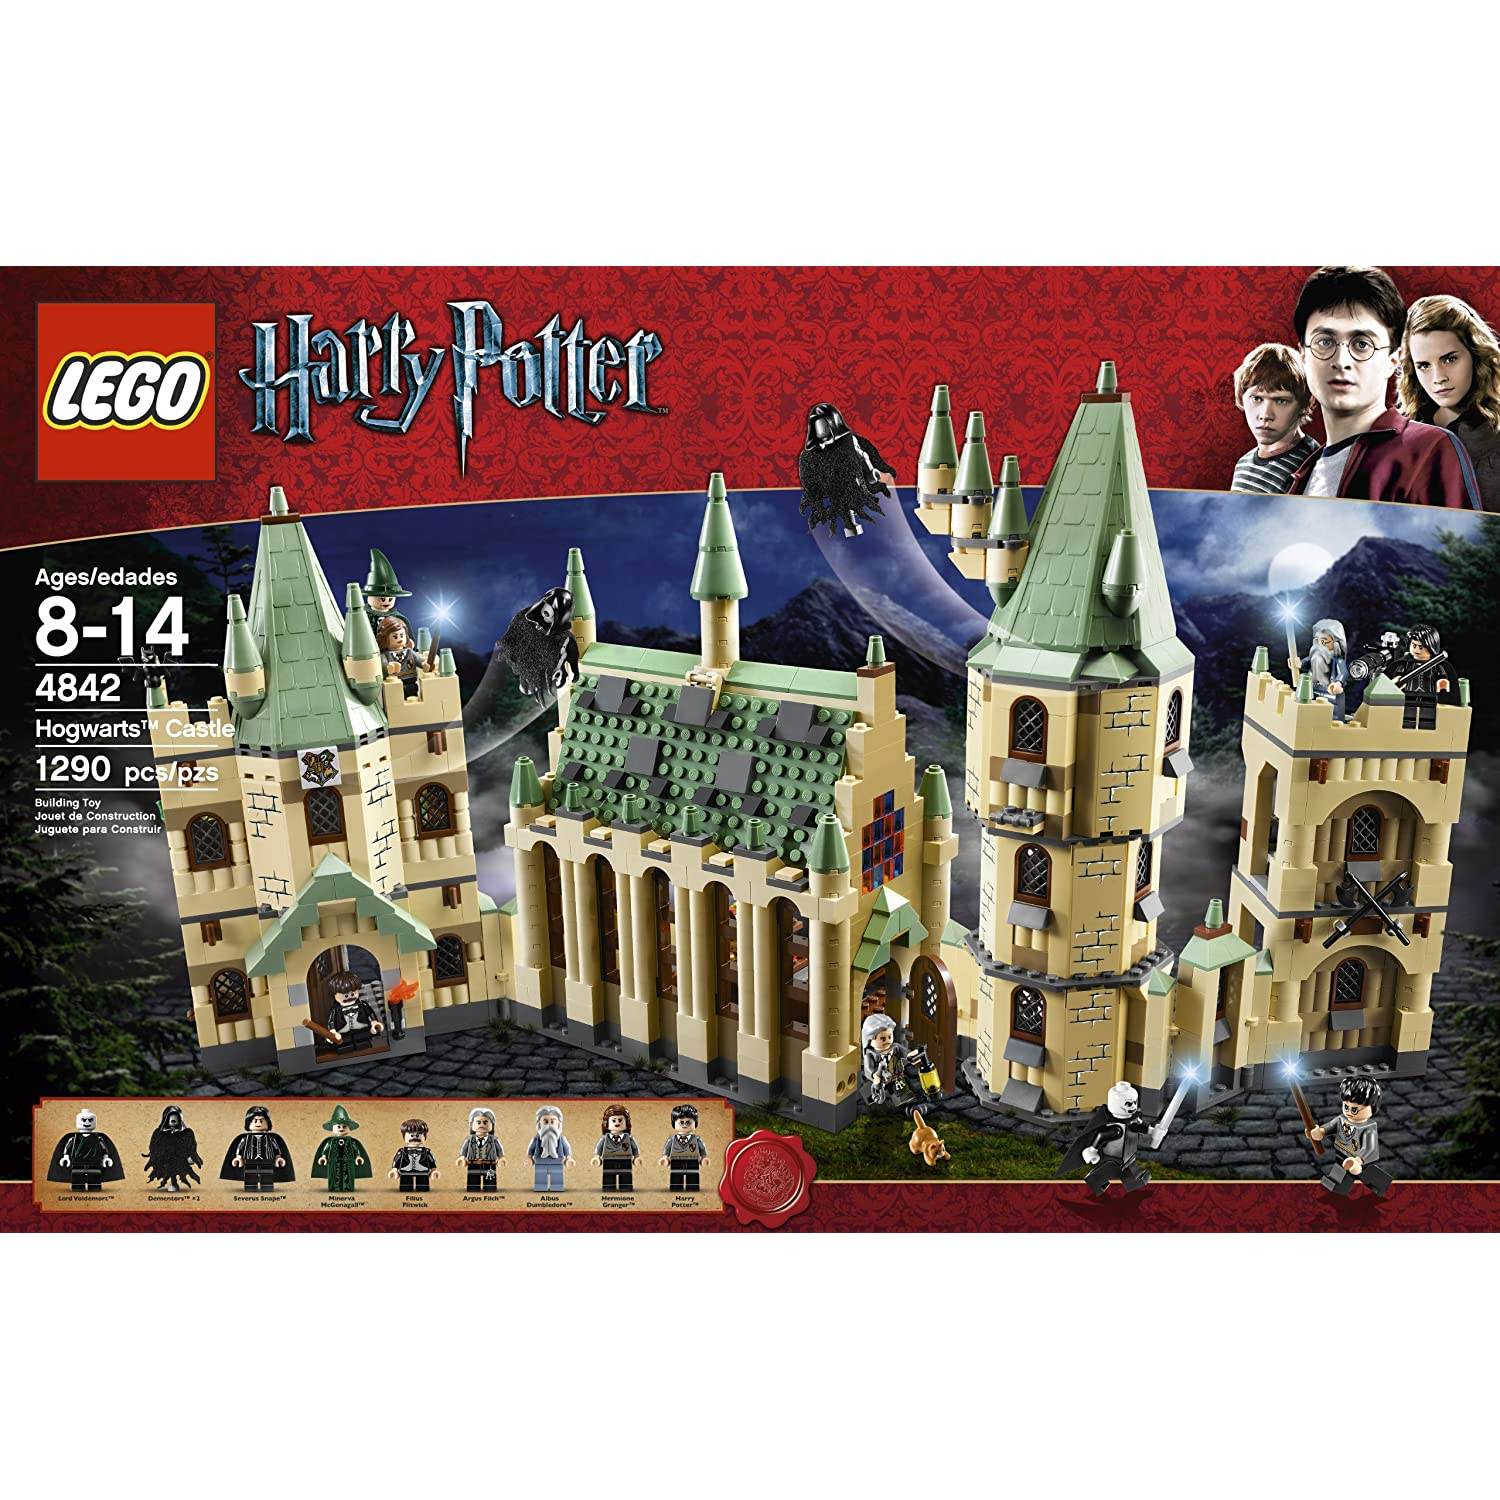 Castle Harry Potter Lego Lego Harry Potter Hogwarts